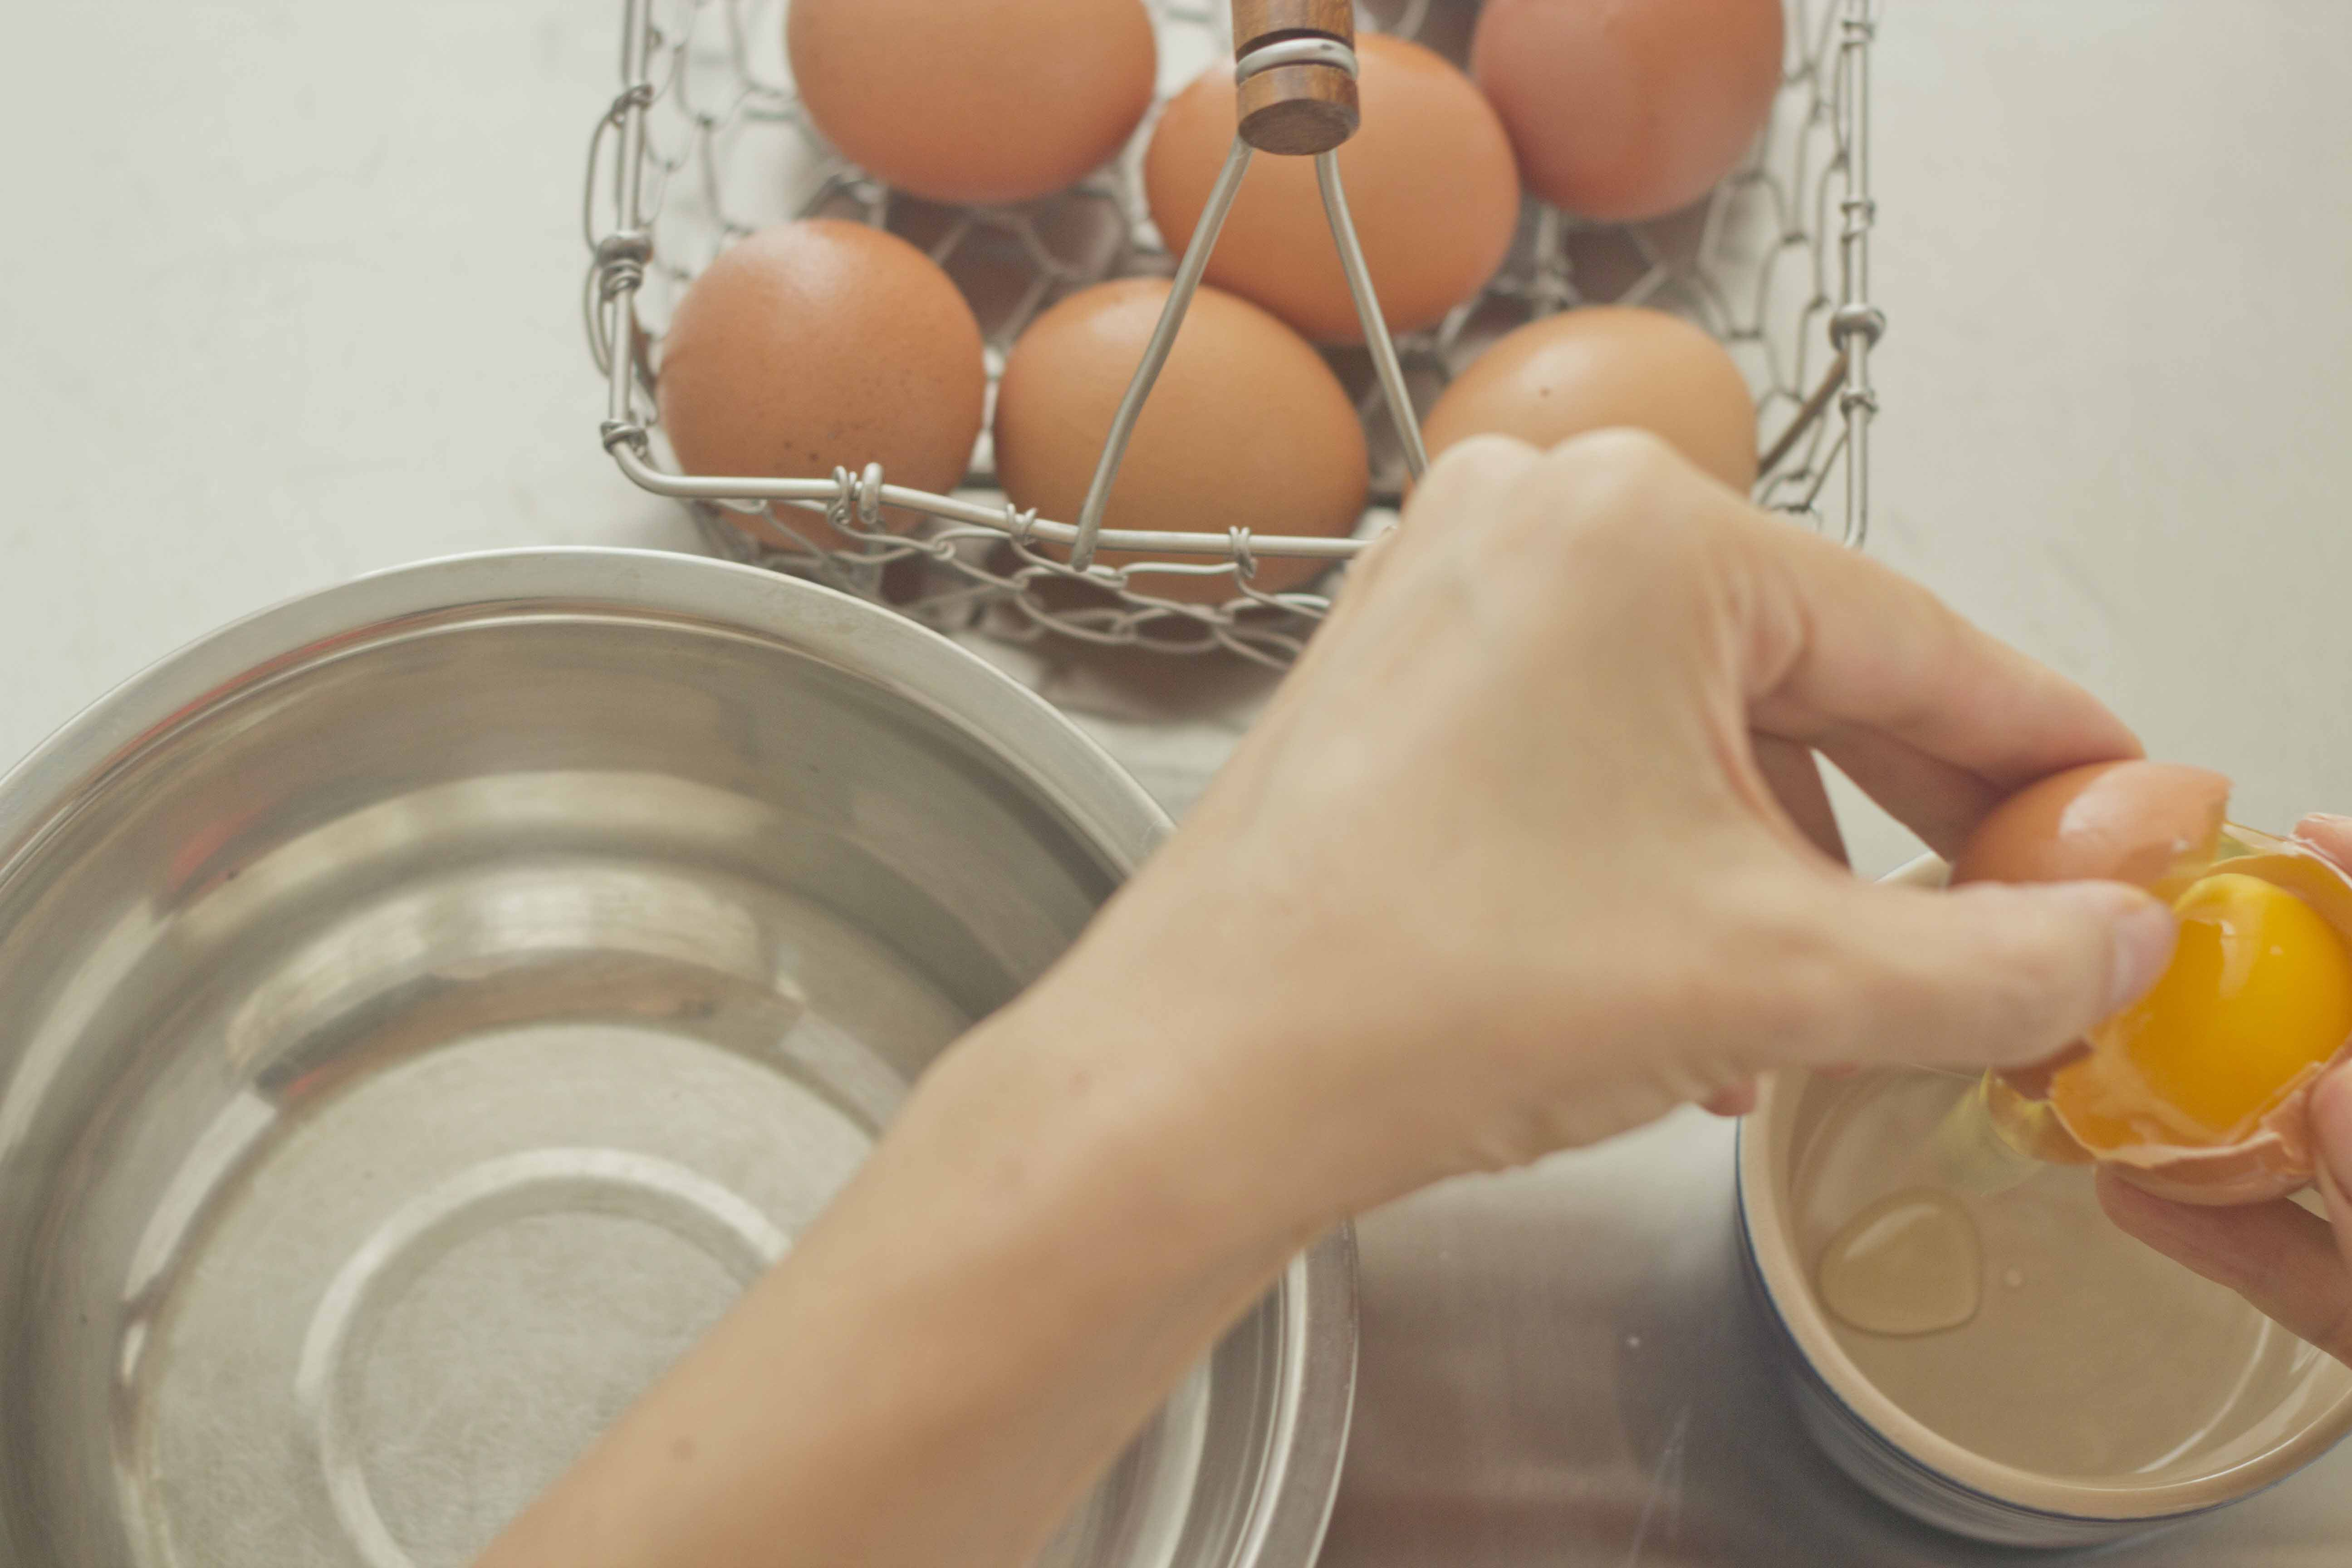 A Simple Illustrated Guide On How To Separate Egg Yolks And Egg